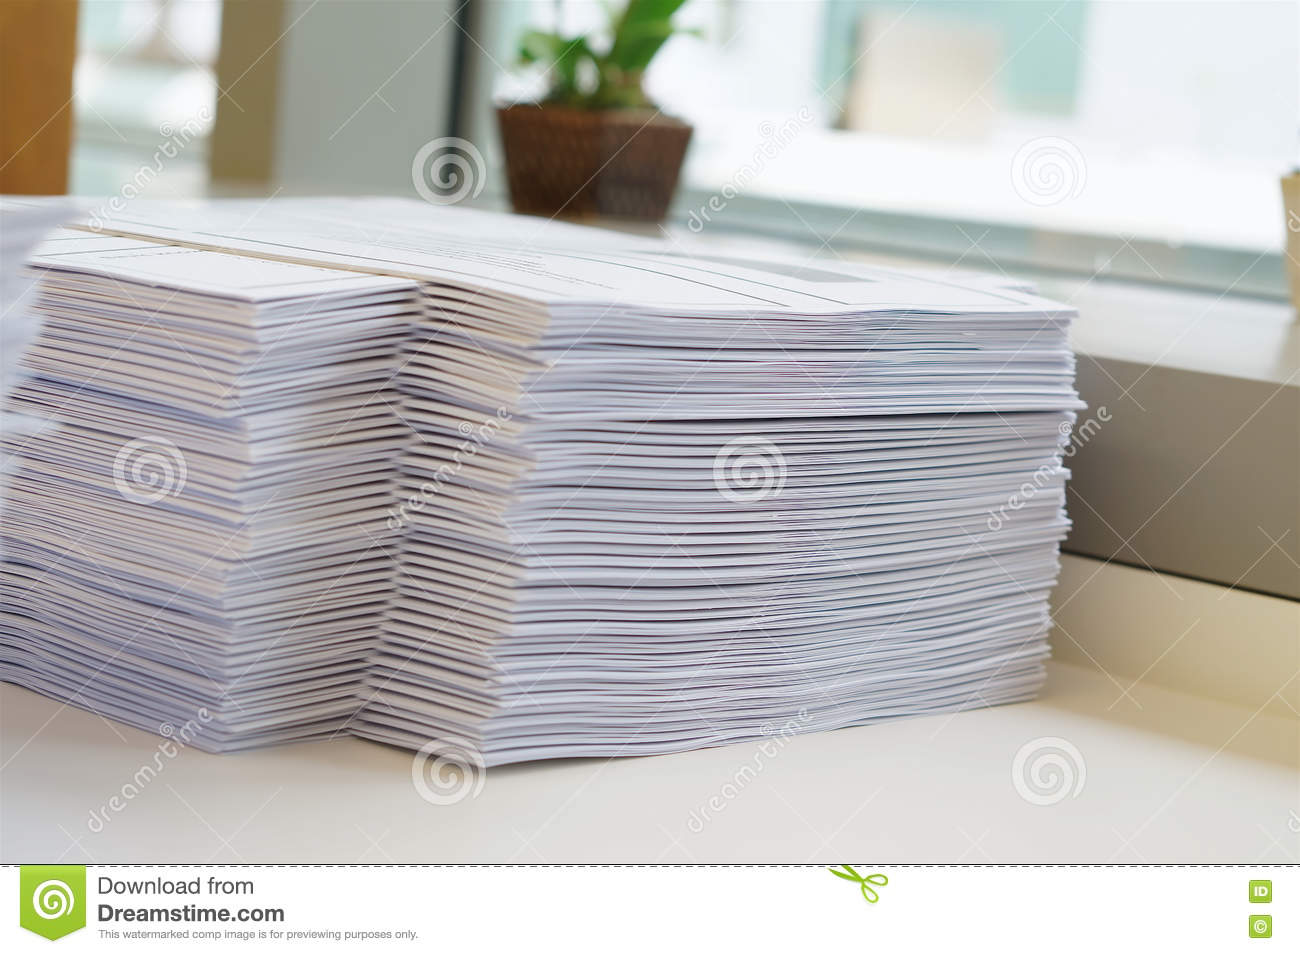 Stack of papers worksheet near window